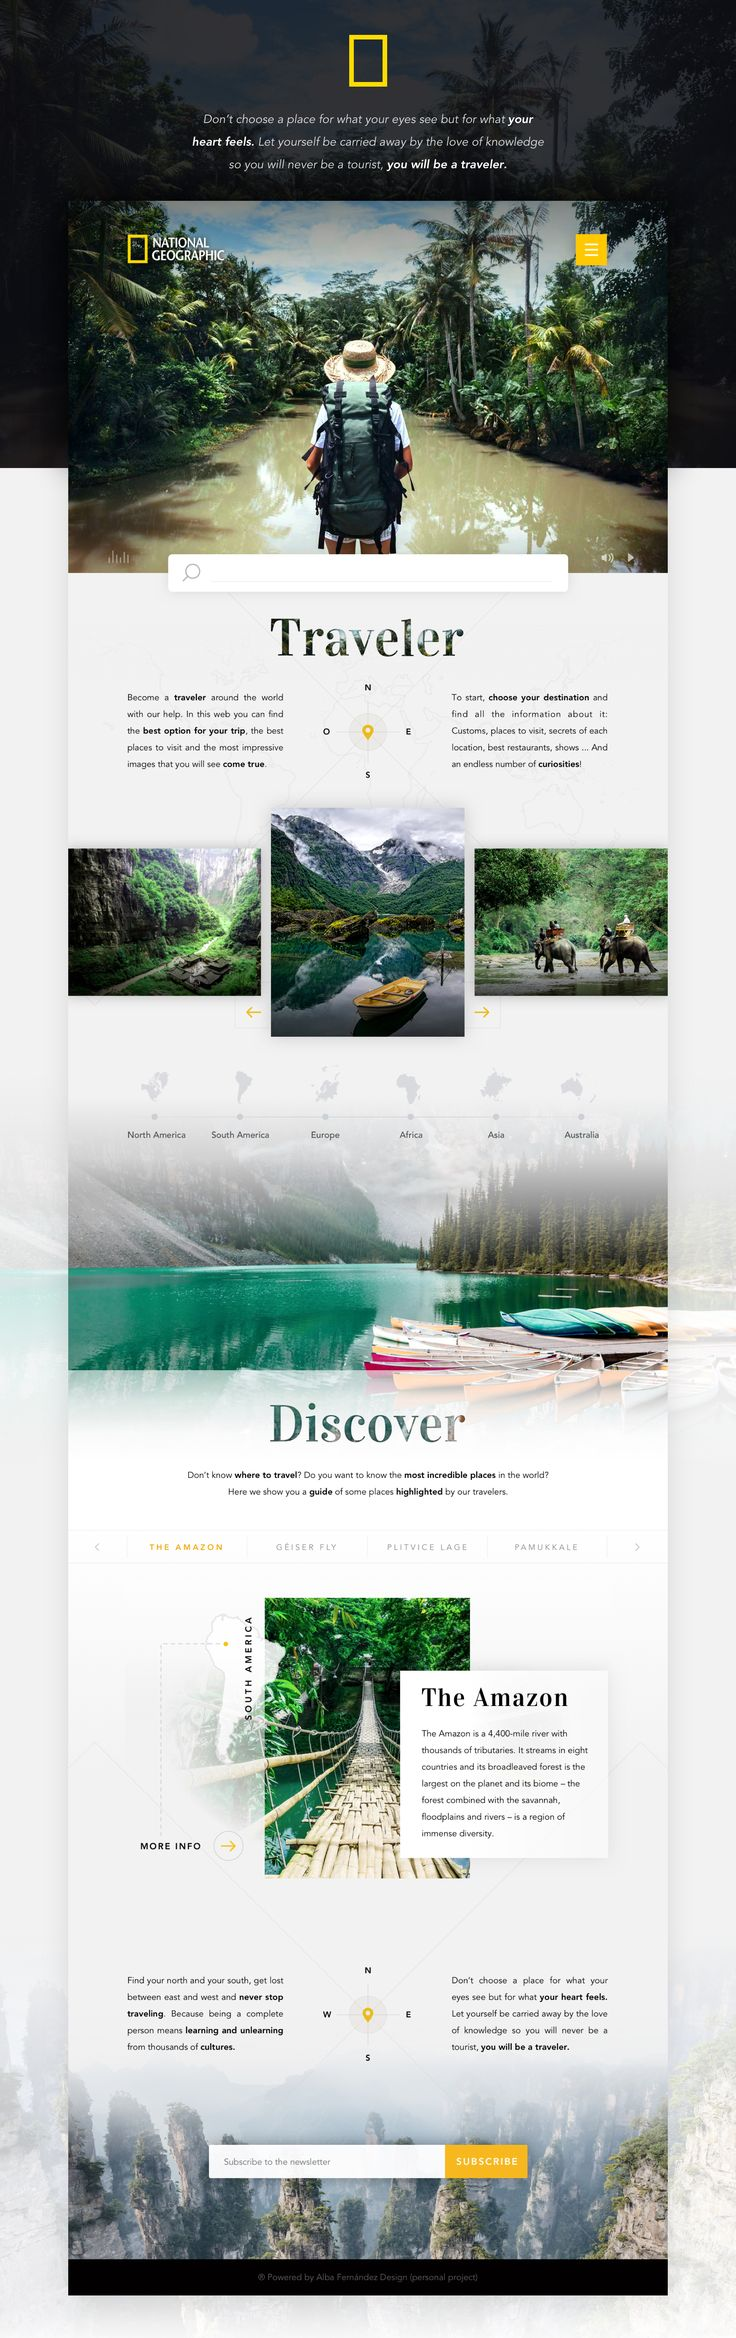 National geographic landingpage3x